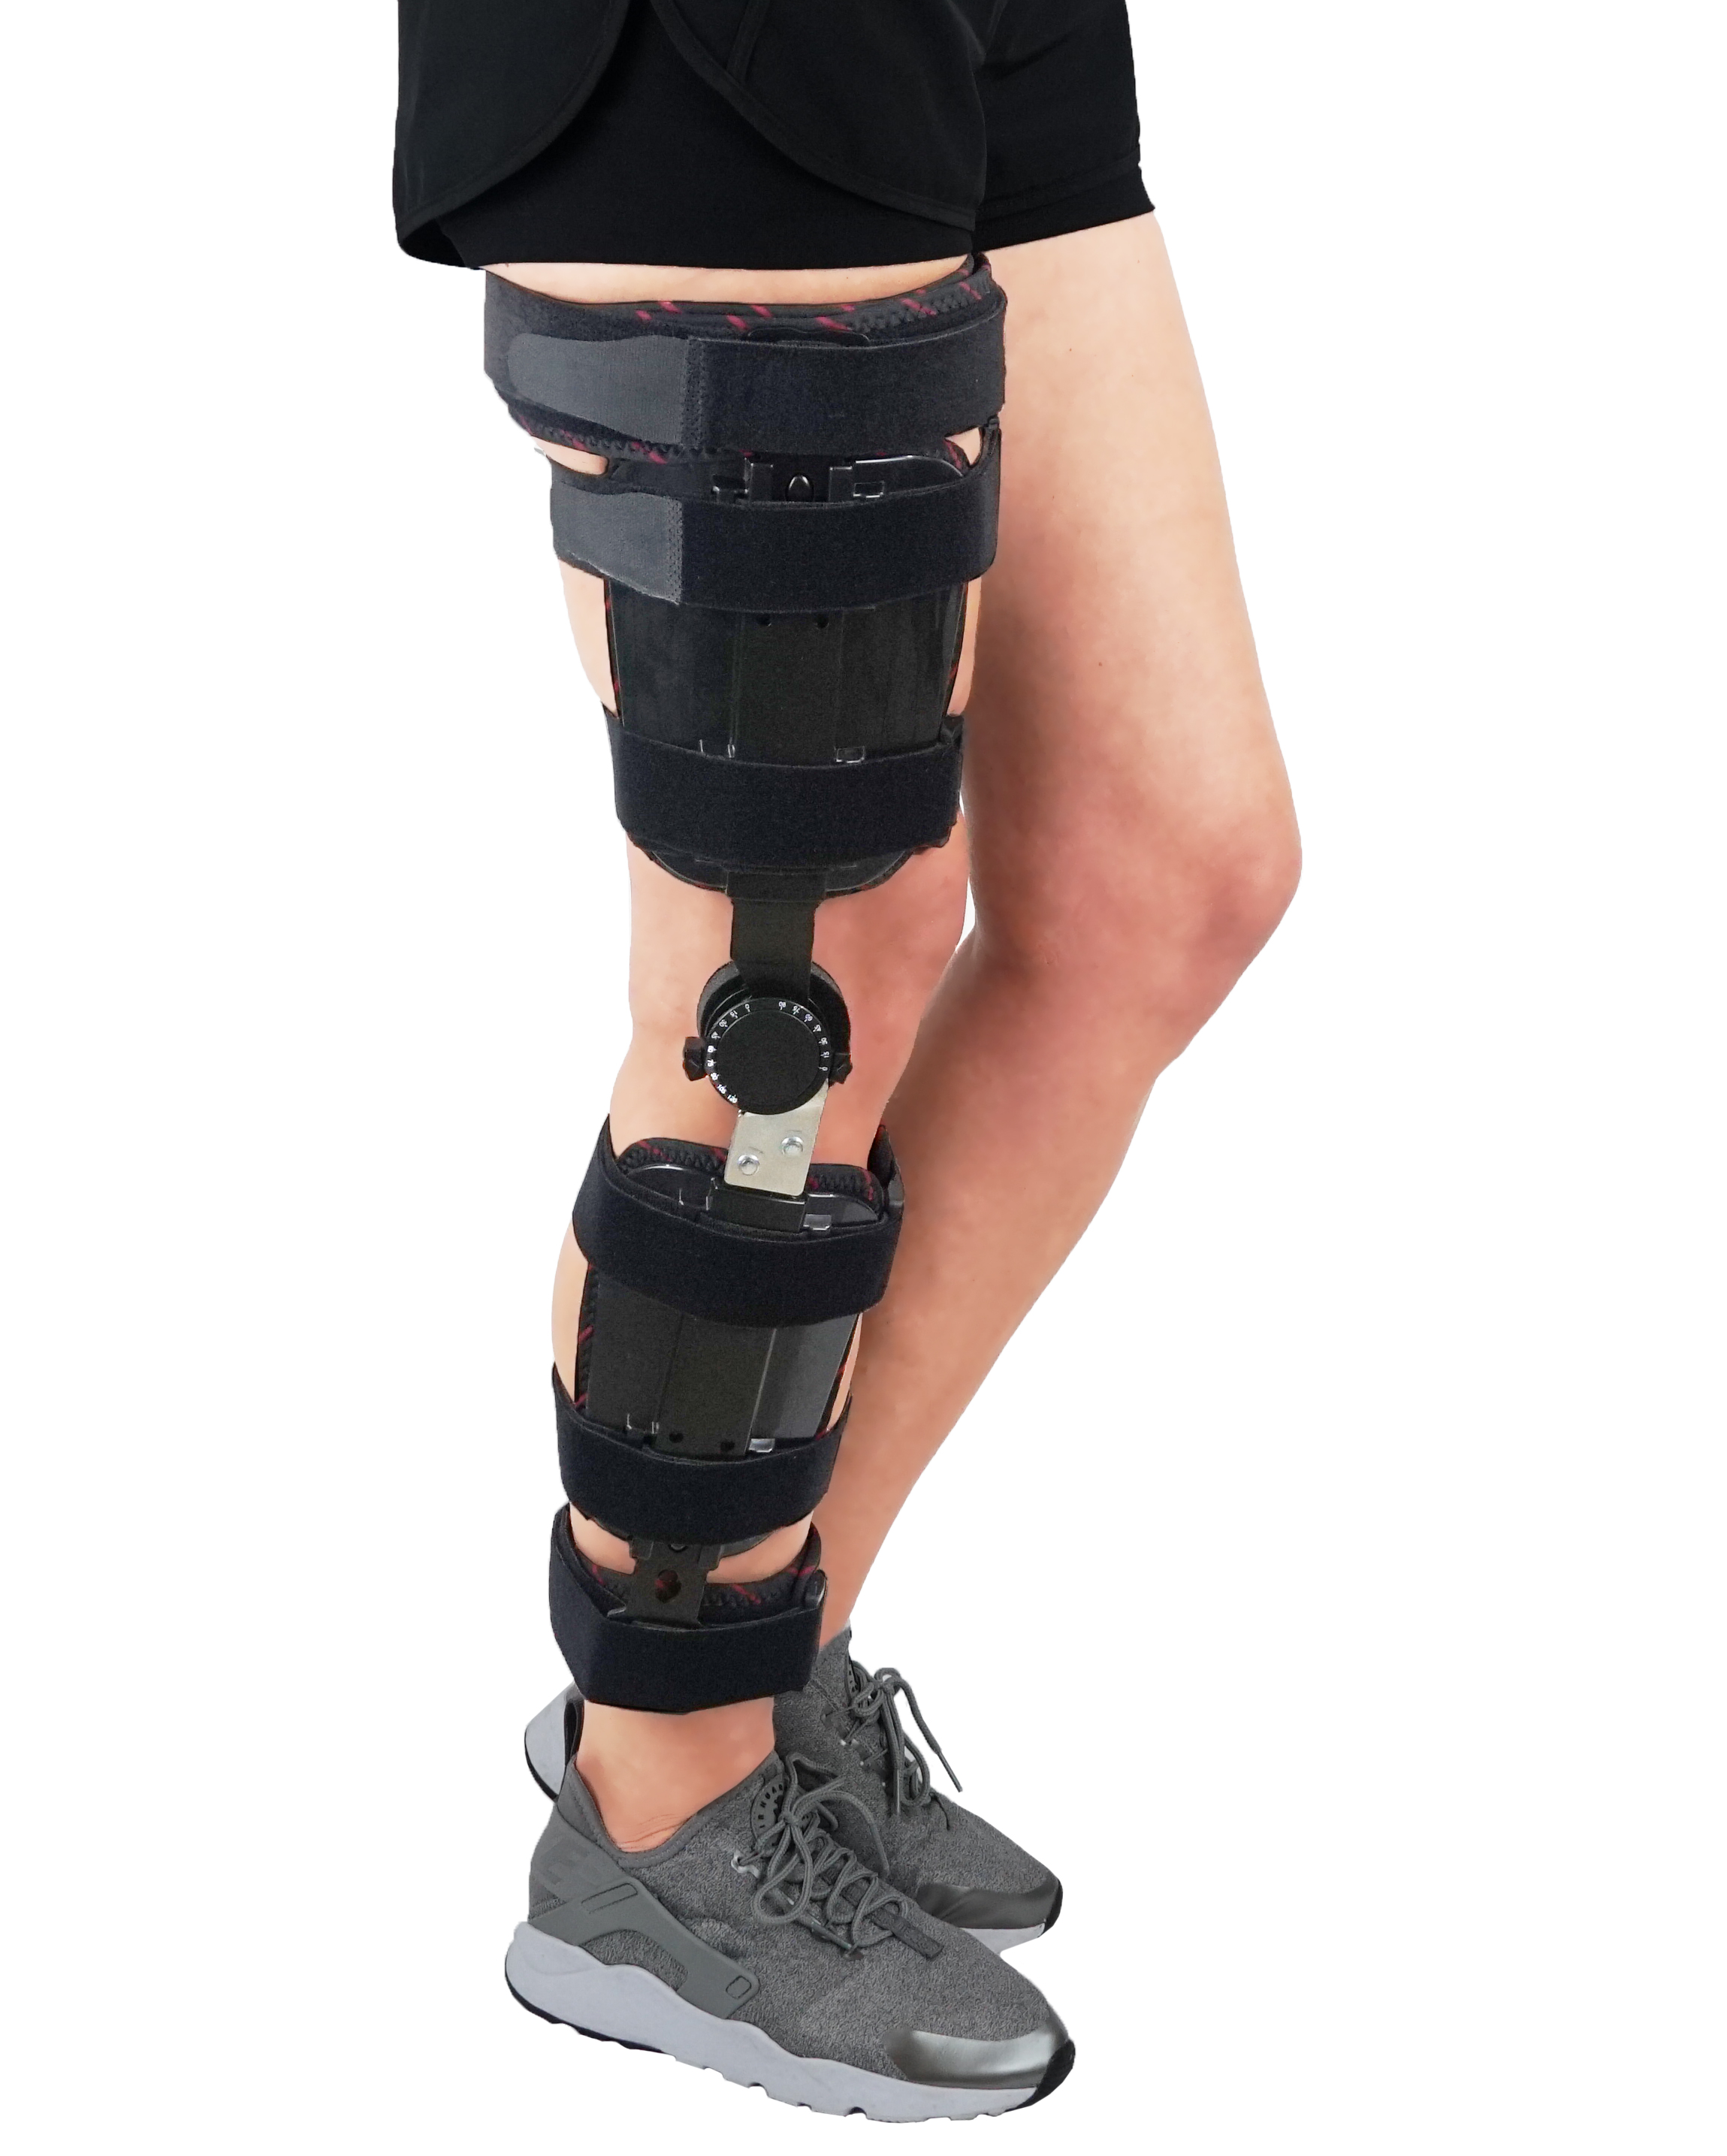 8f02489a29 Hinged Adjustable Knee Brace Support Stabilizer Immobilizer ...